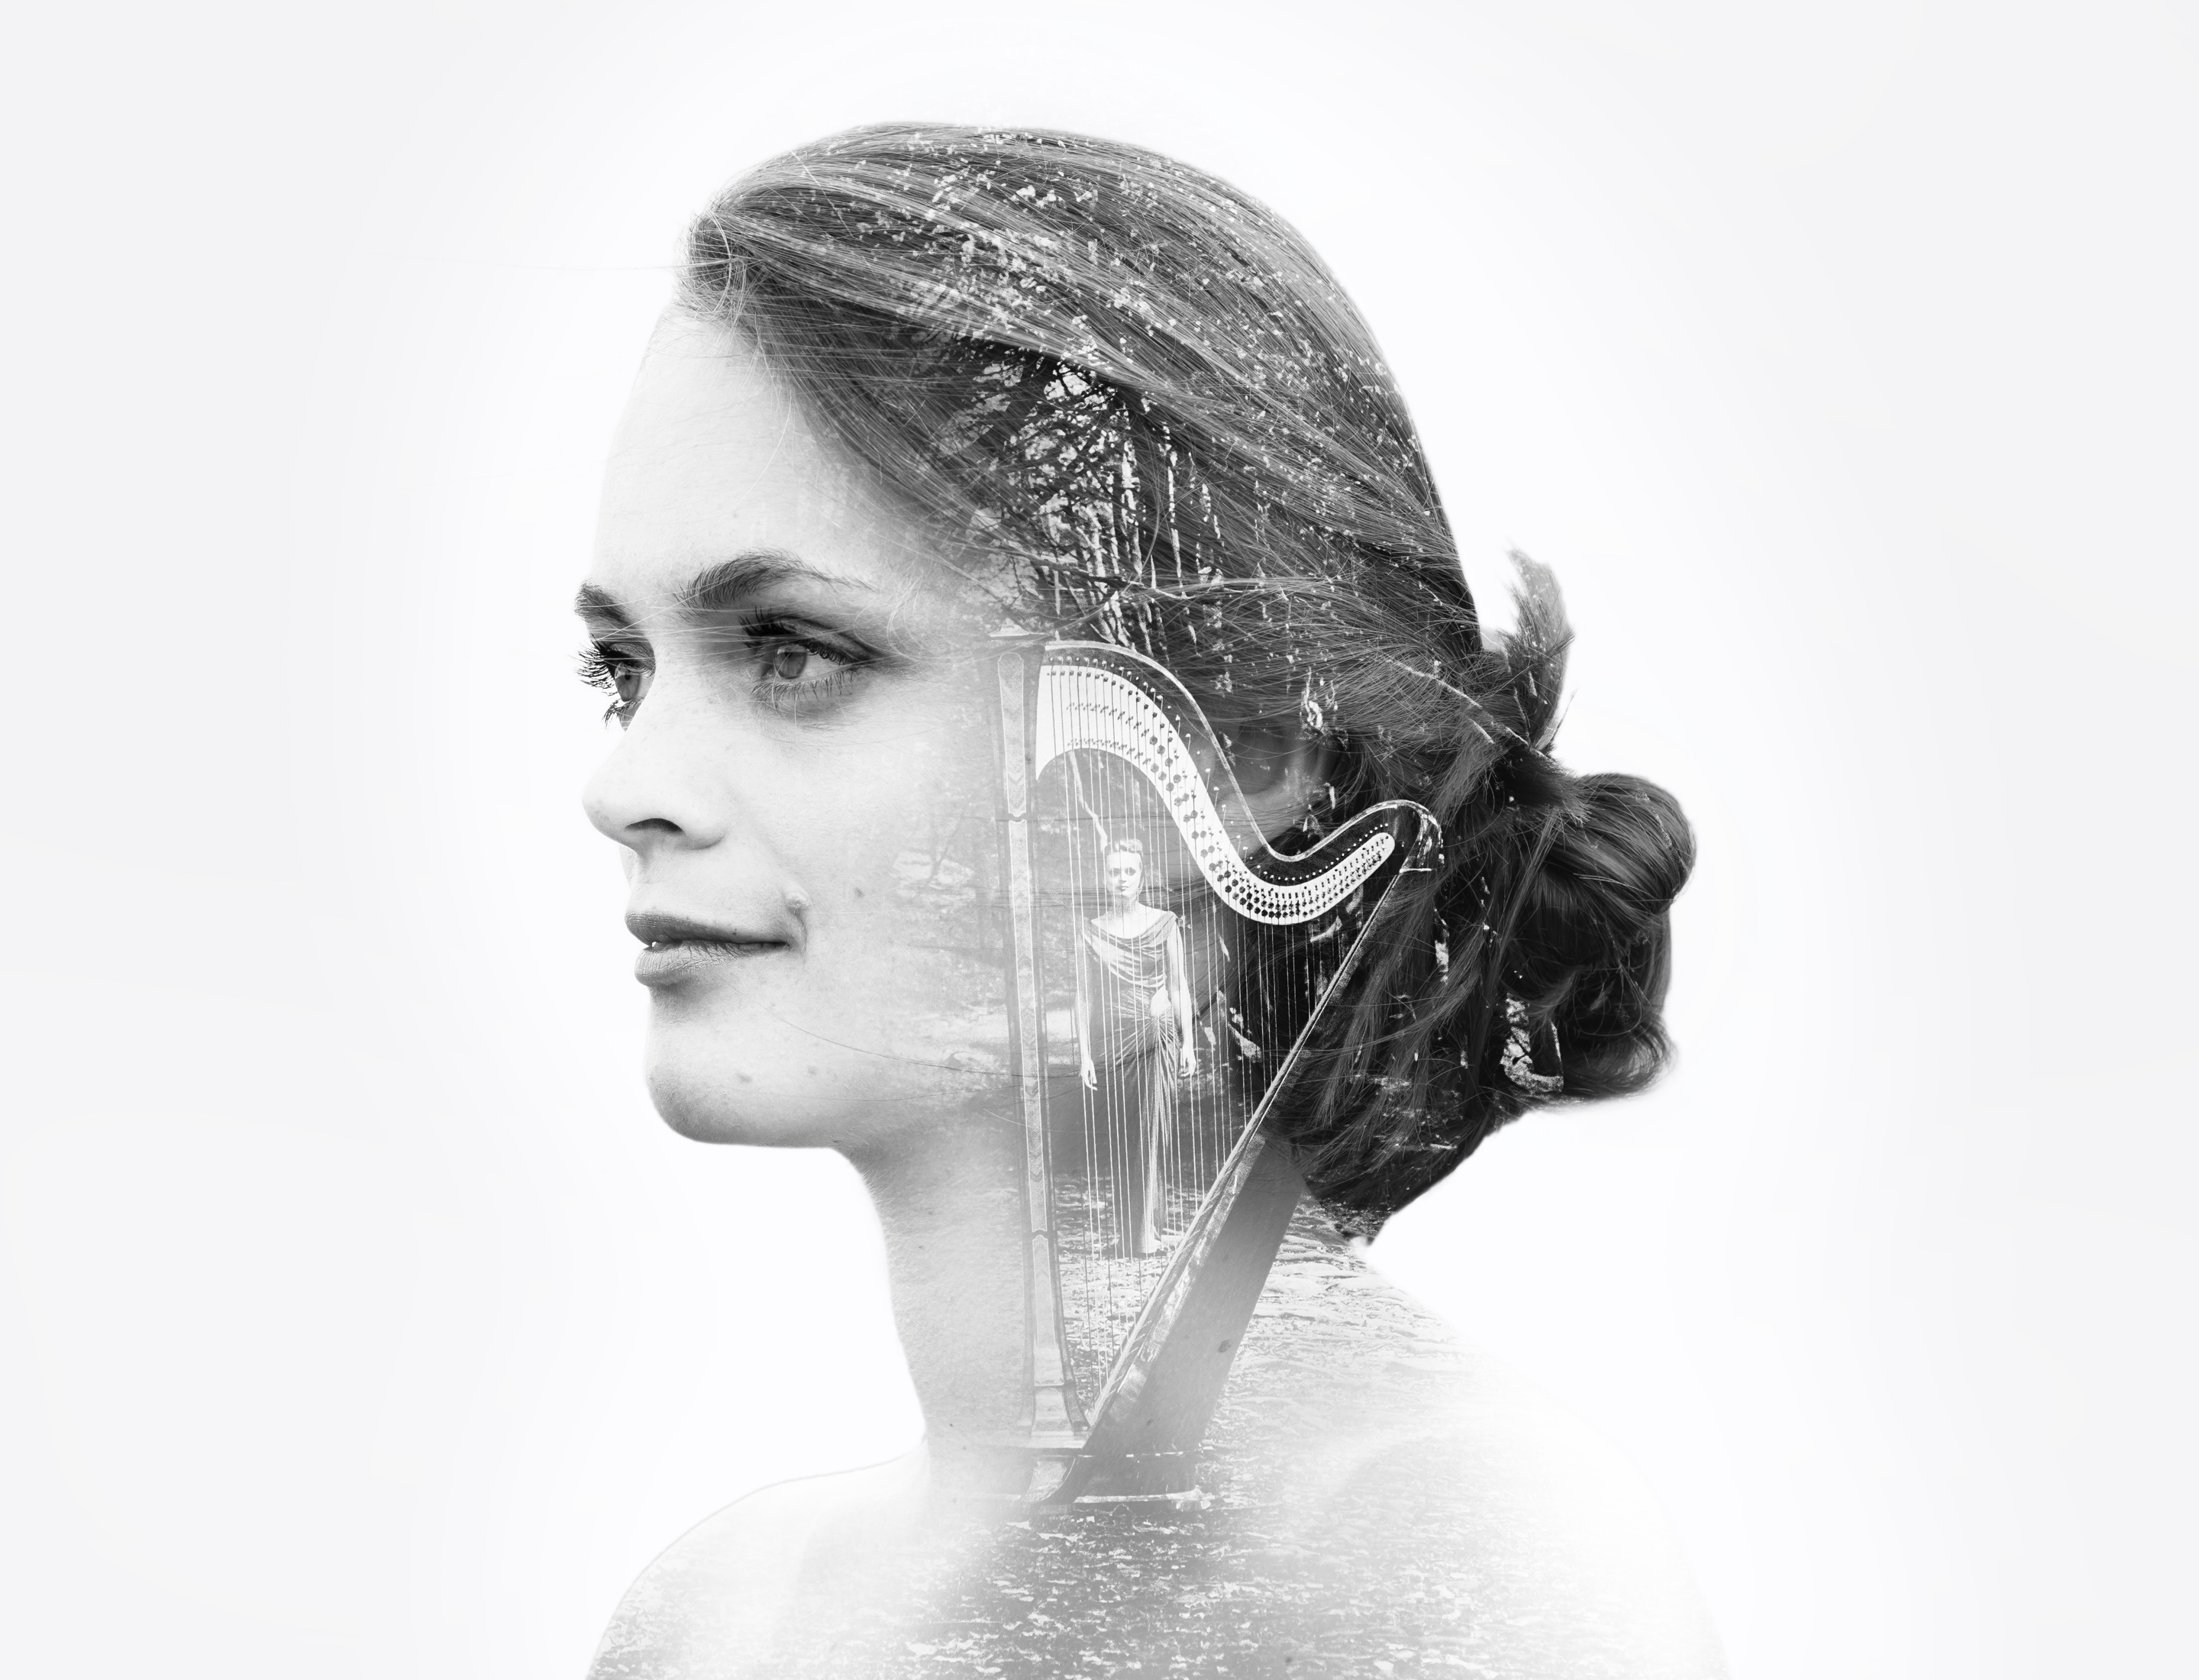 Dreamy and surreal double exposure imagery and photography by Jack Watkins for award-winning classical musician and harpist, Lucy Nolan